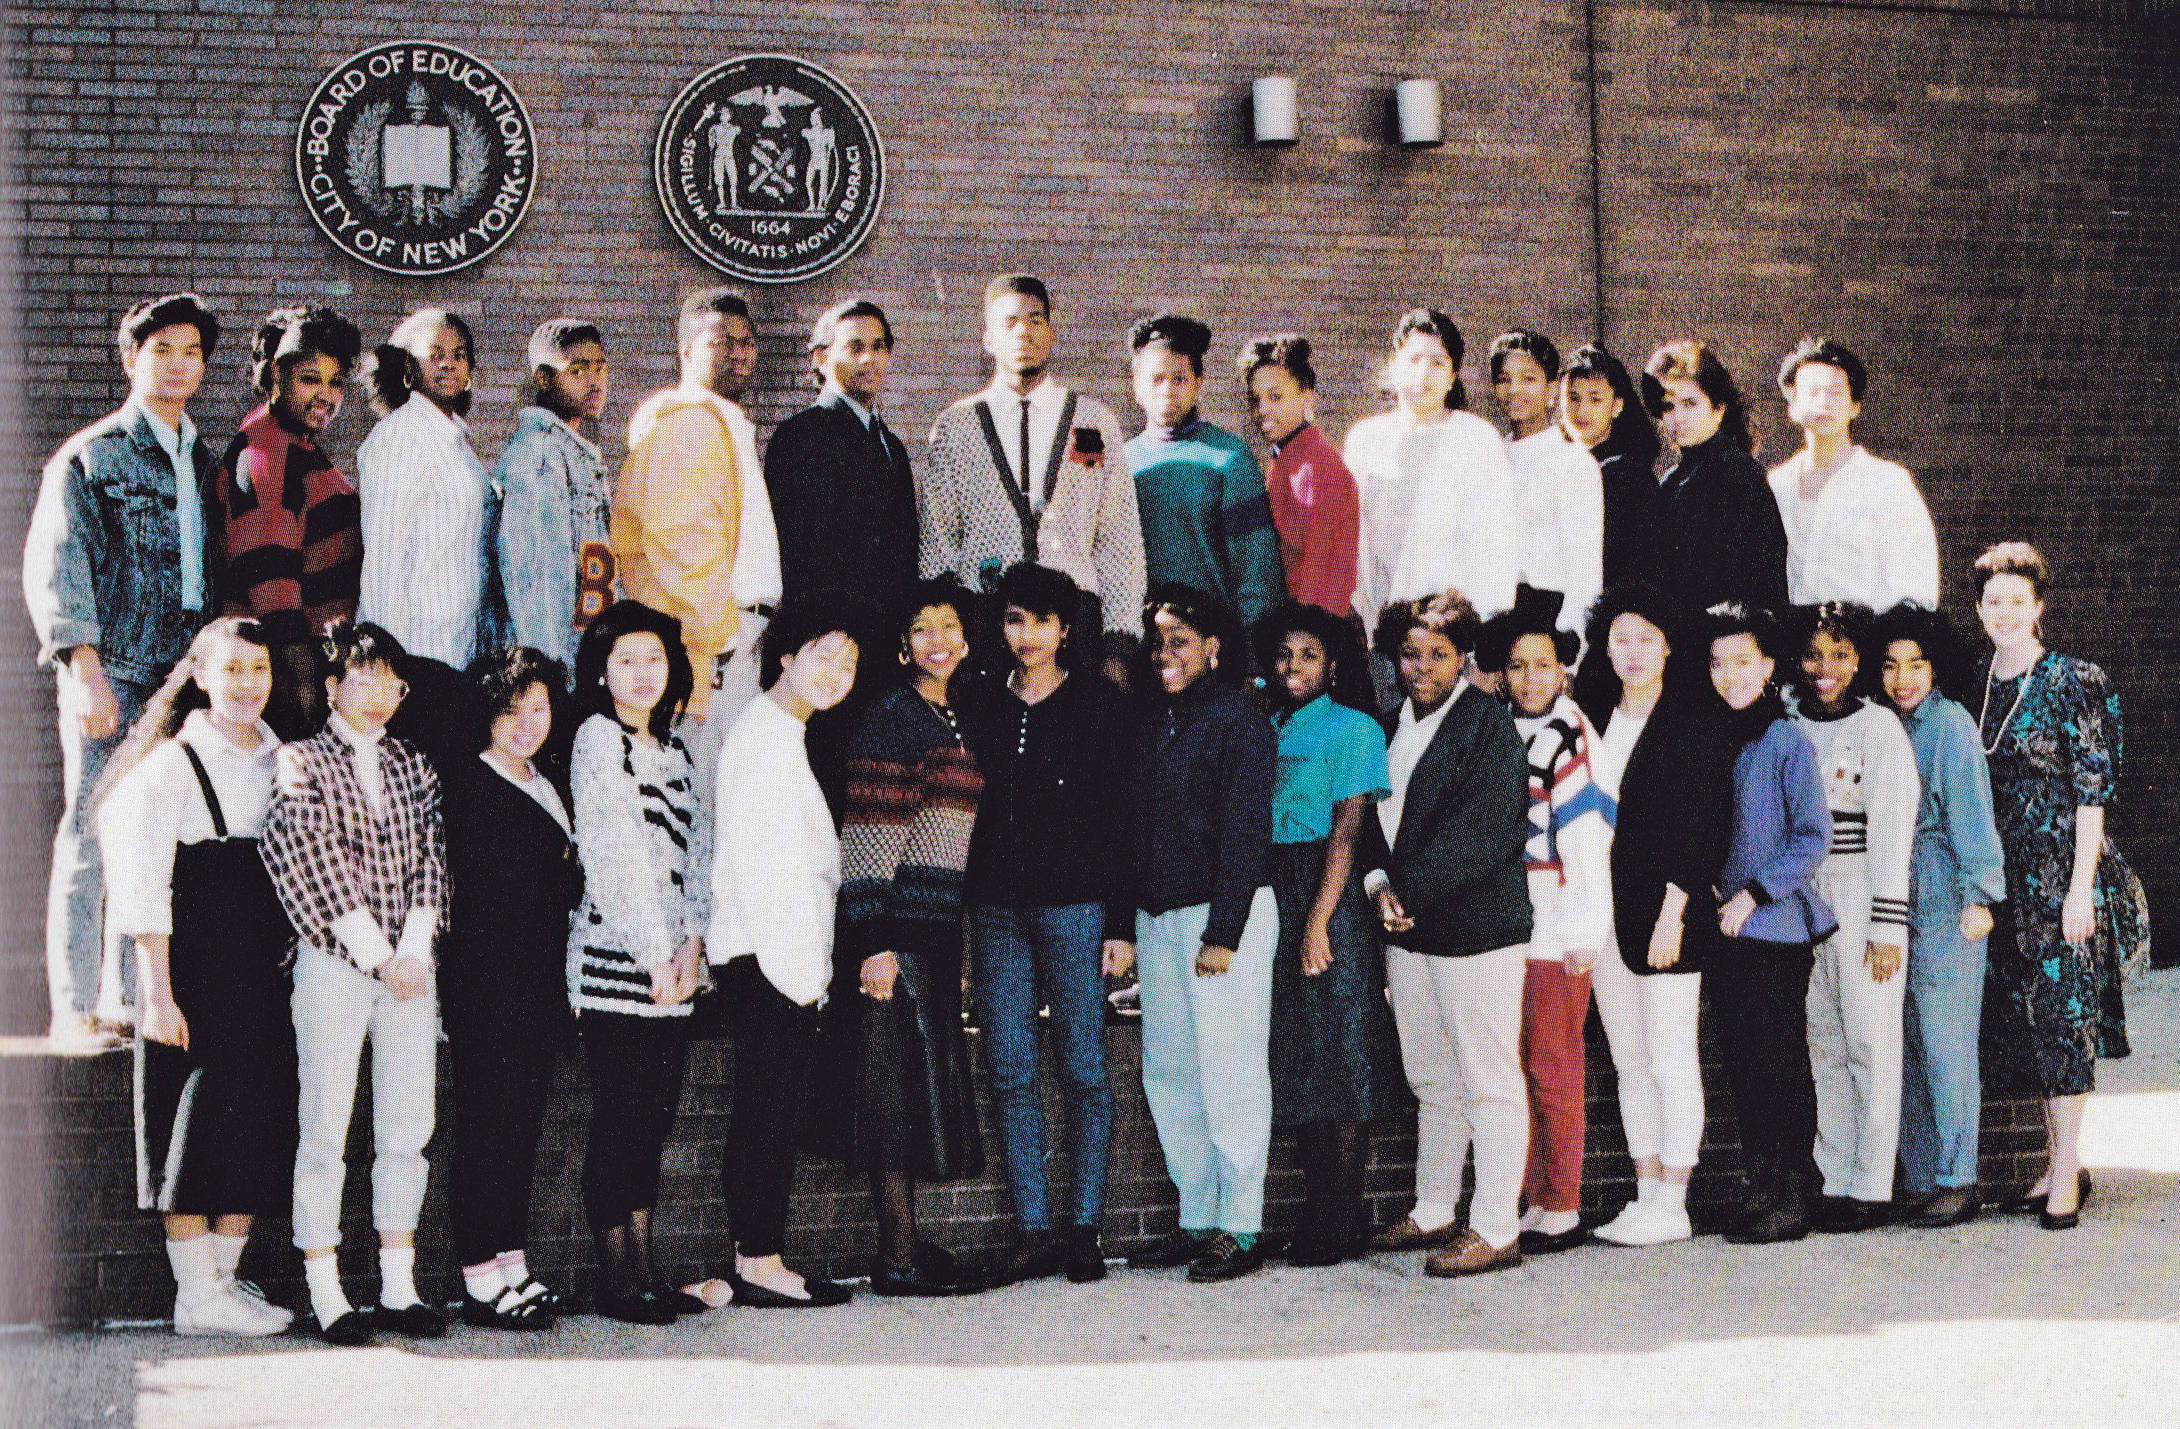 This is me with my first homeroom class. This picture was taken in September or October of 1988.